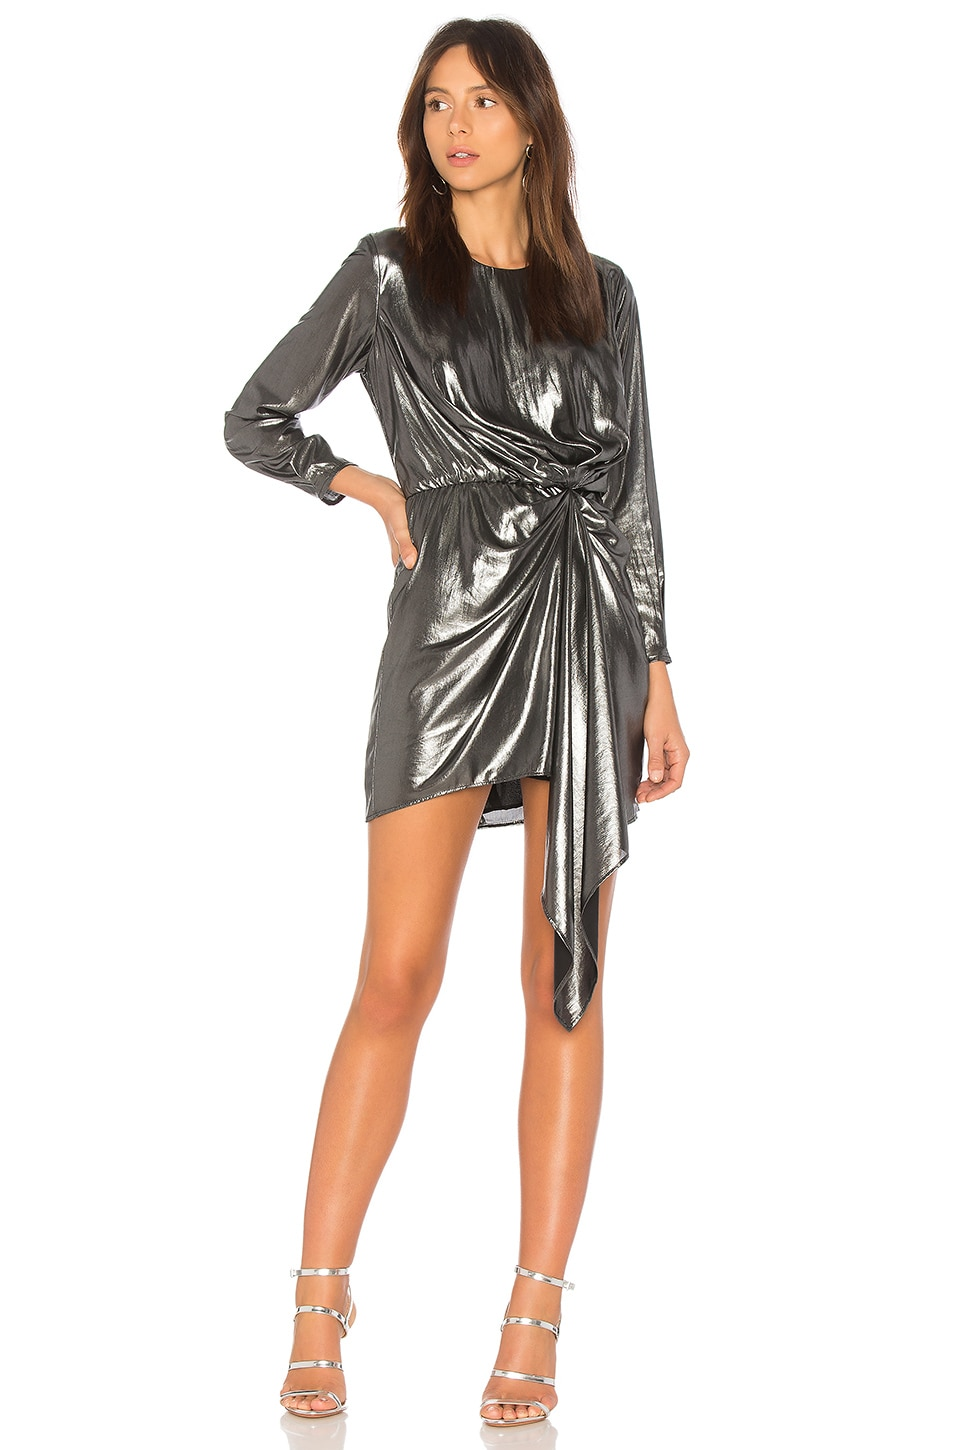 krisa Seymore Draped Dress in Gunmetal